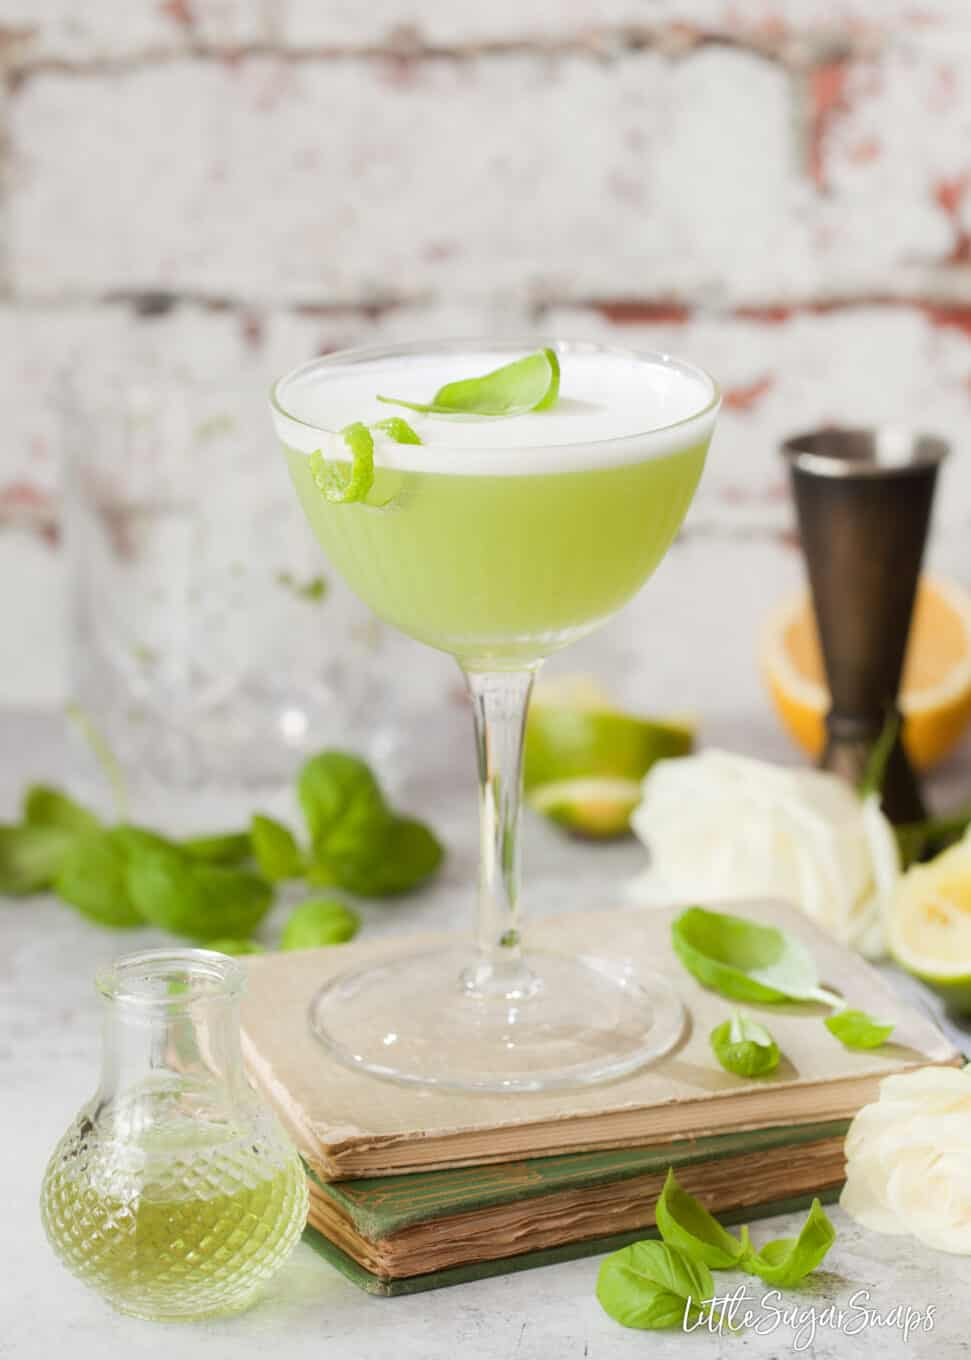 Variation on a spring feeling cocktail - green chartreuse cocktail is garnished with egg white foam and lime zest